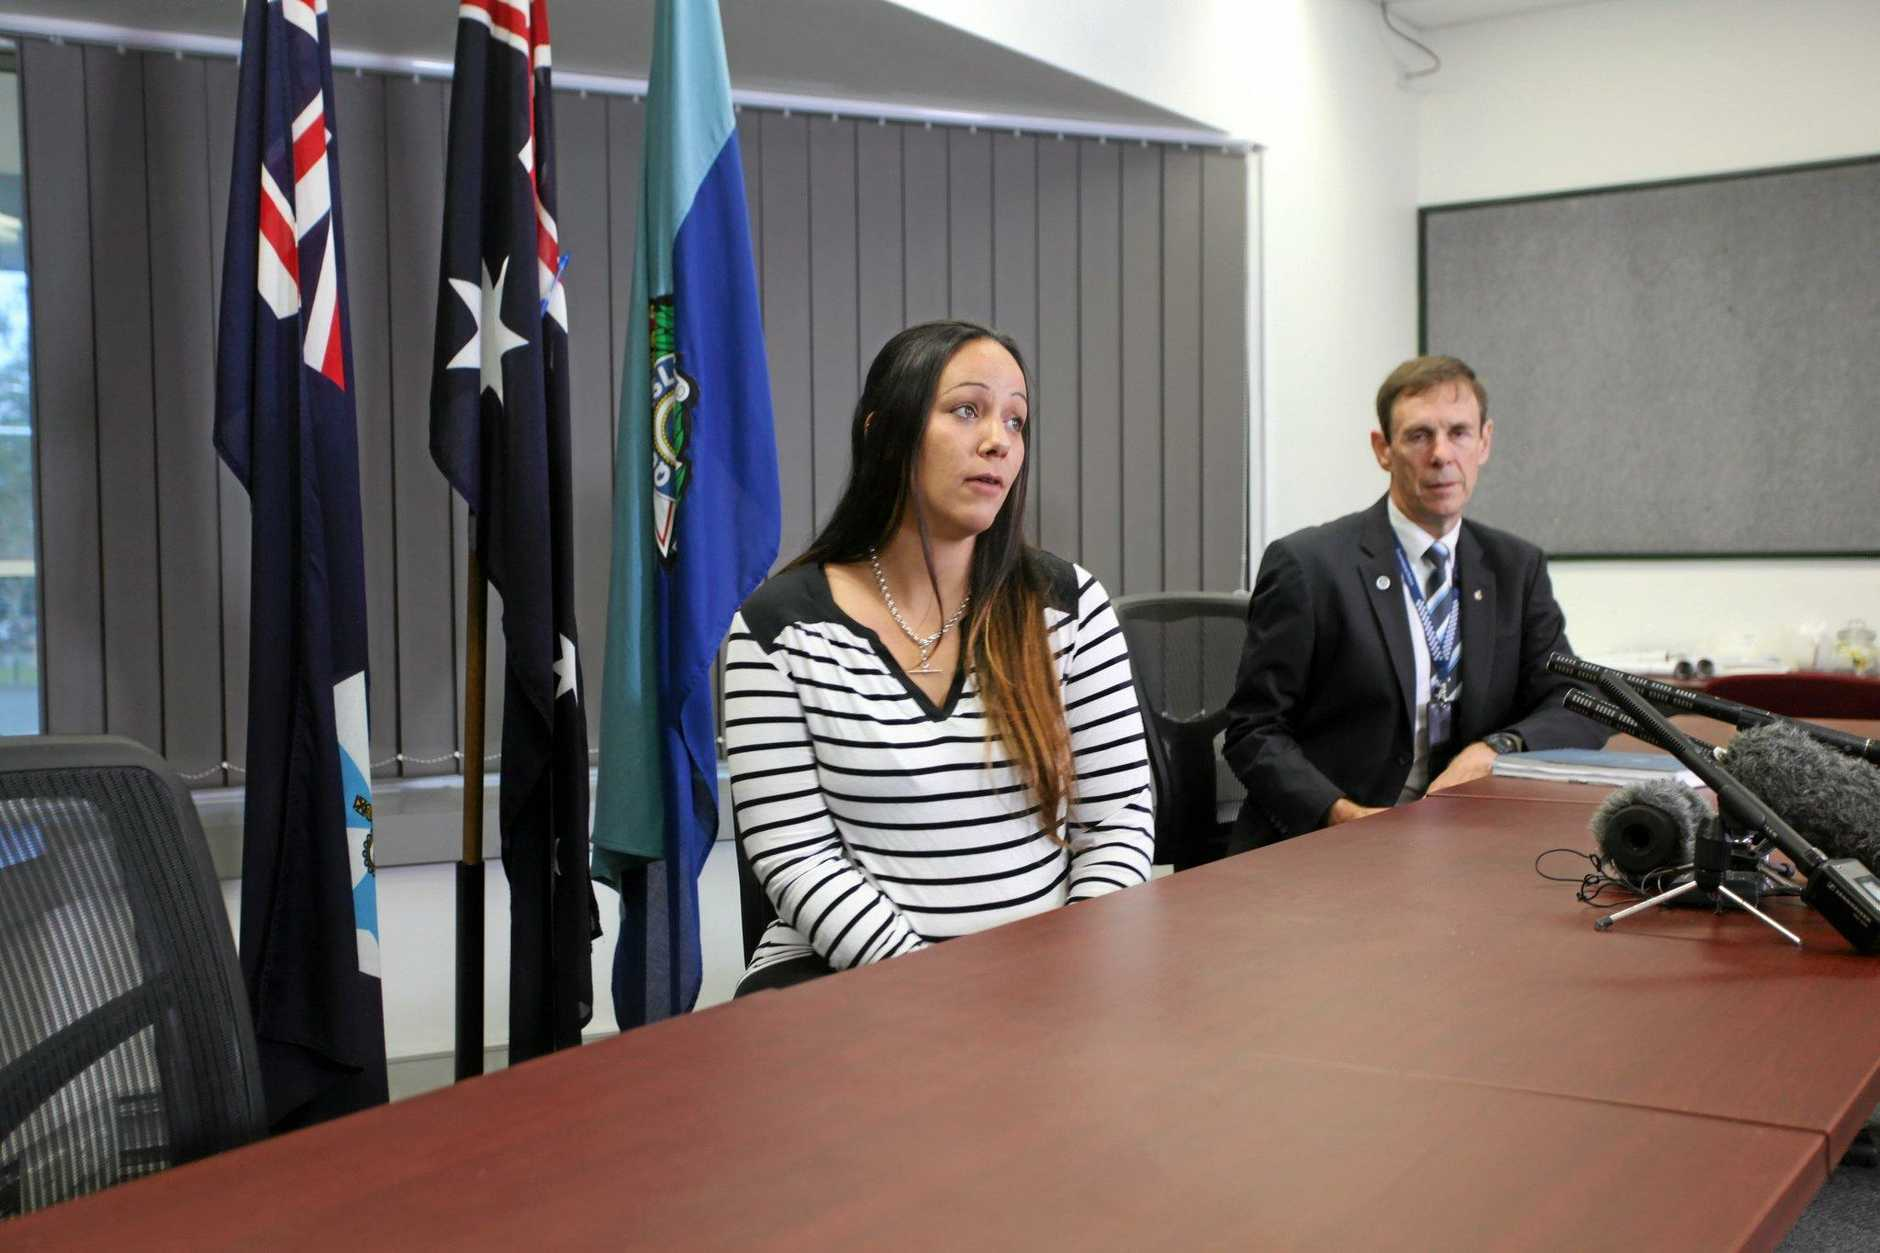 Tiahleigh Palmer's mother Cindy appeals for information on the disappearance and death of her daughter four months ago